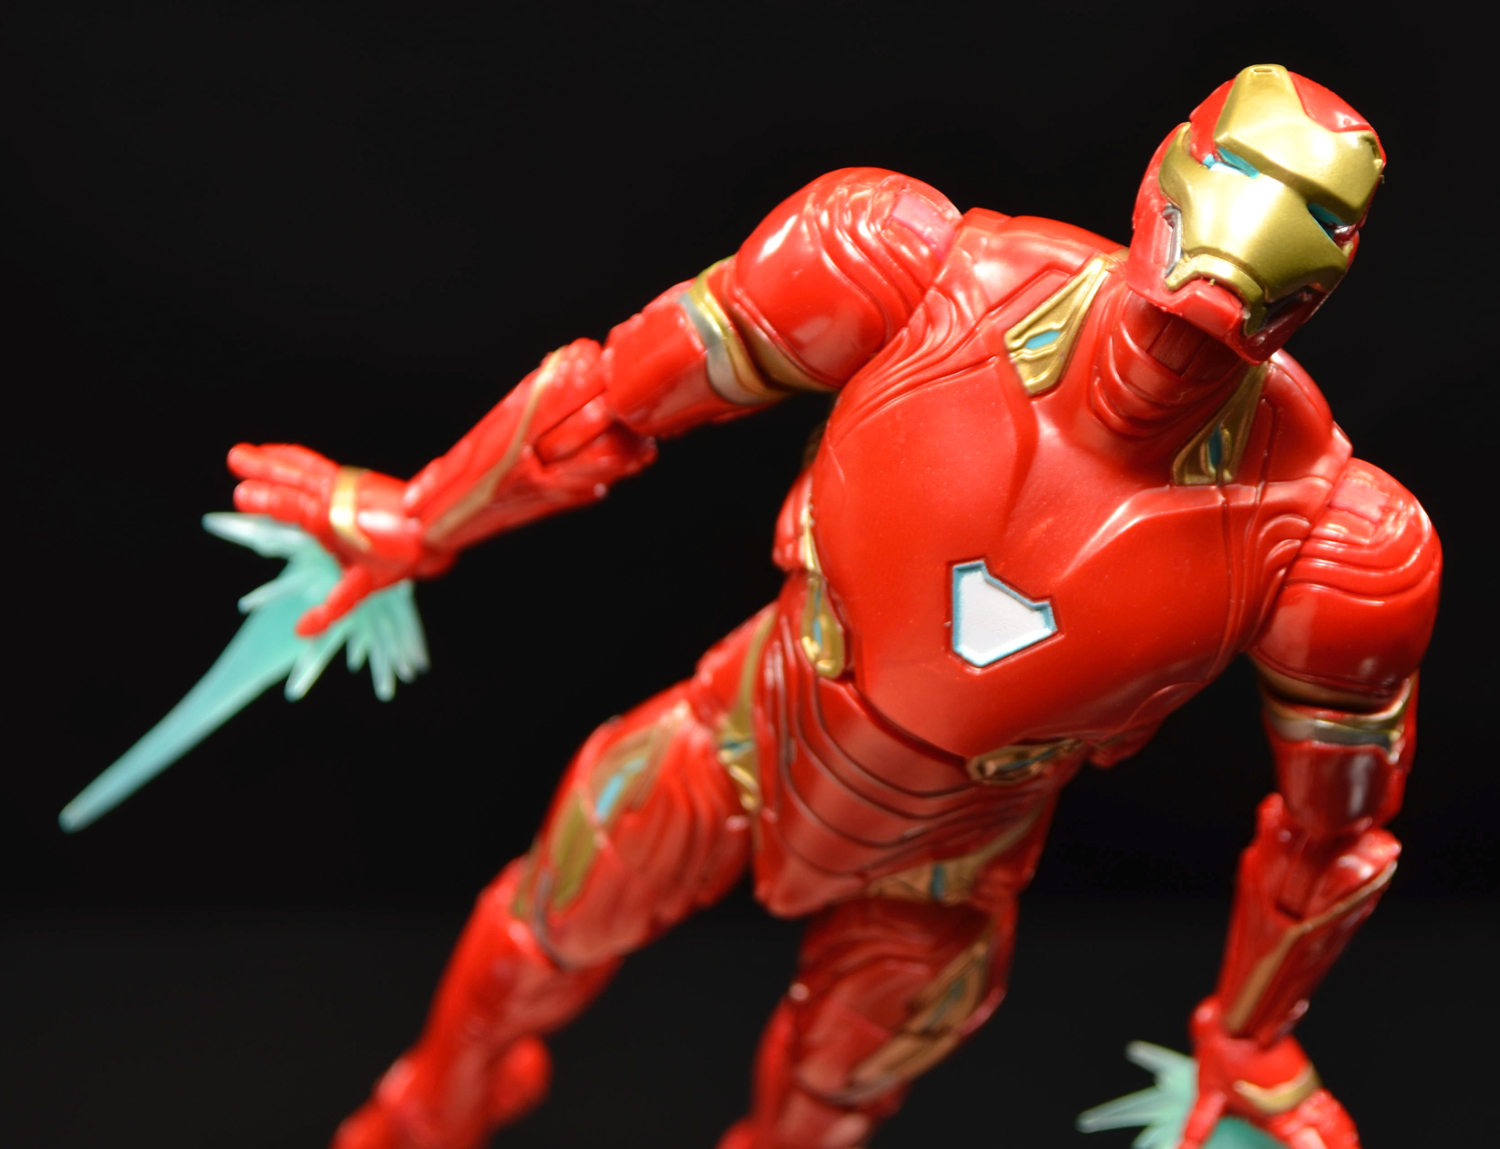 Hasbro: Marvel Legends Avengers: Infinity War Iron Man and